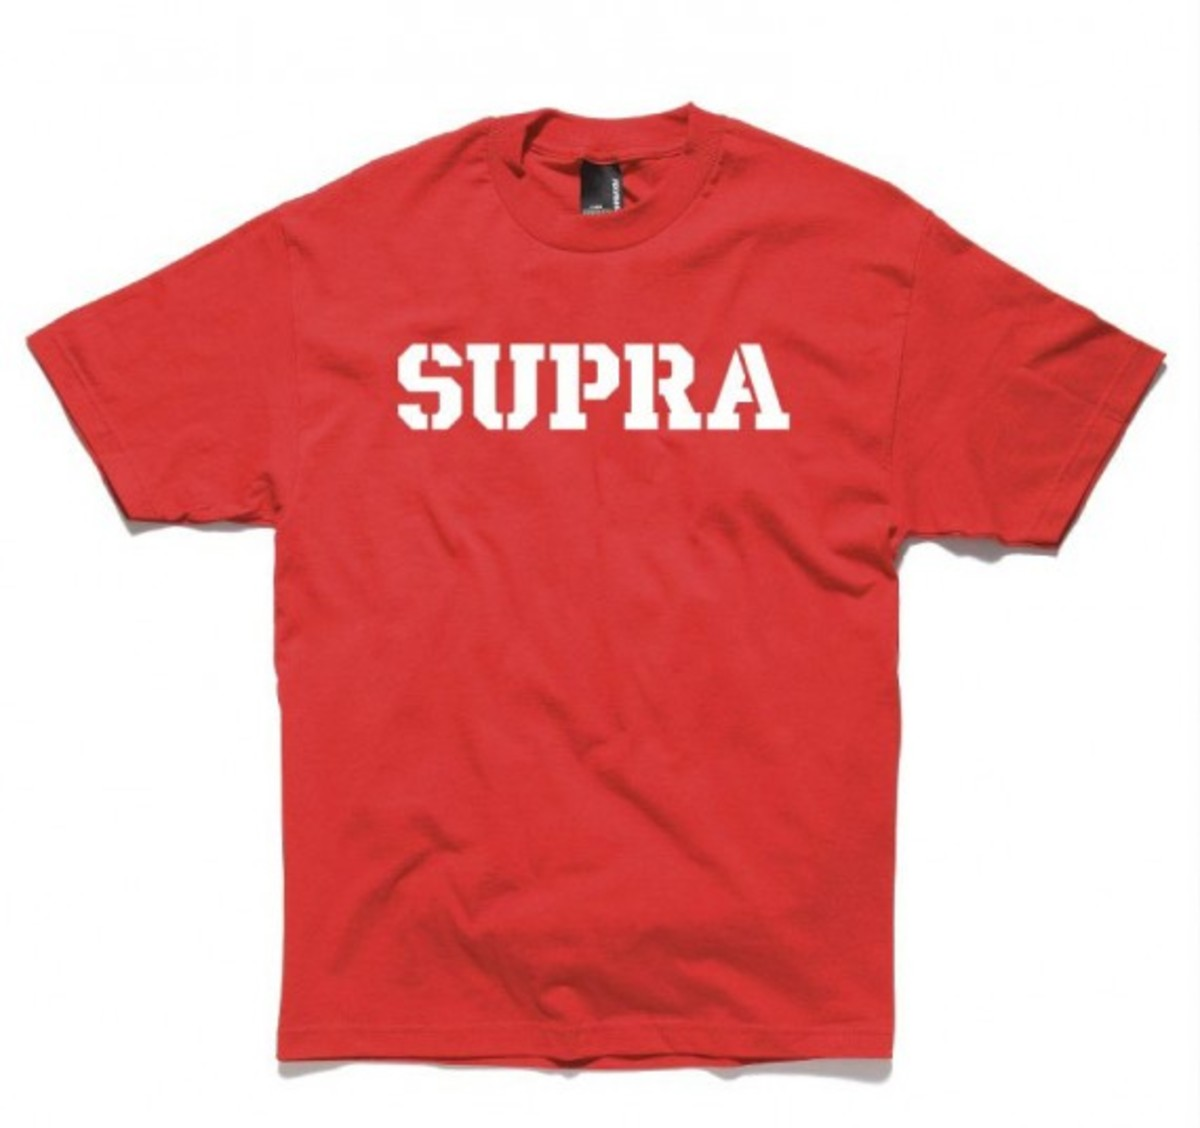 supra-mark-tshirt-10